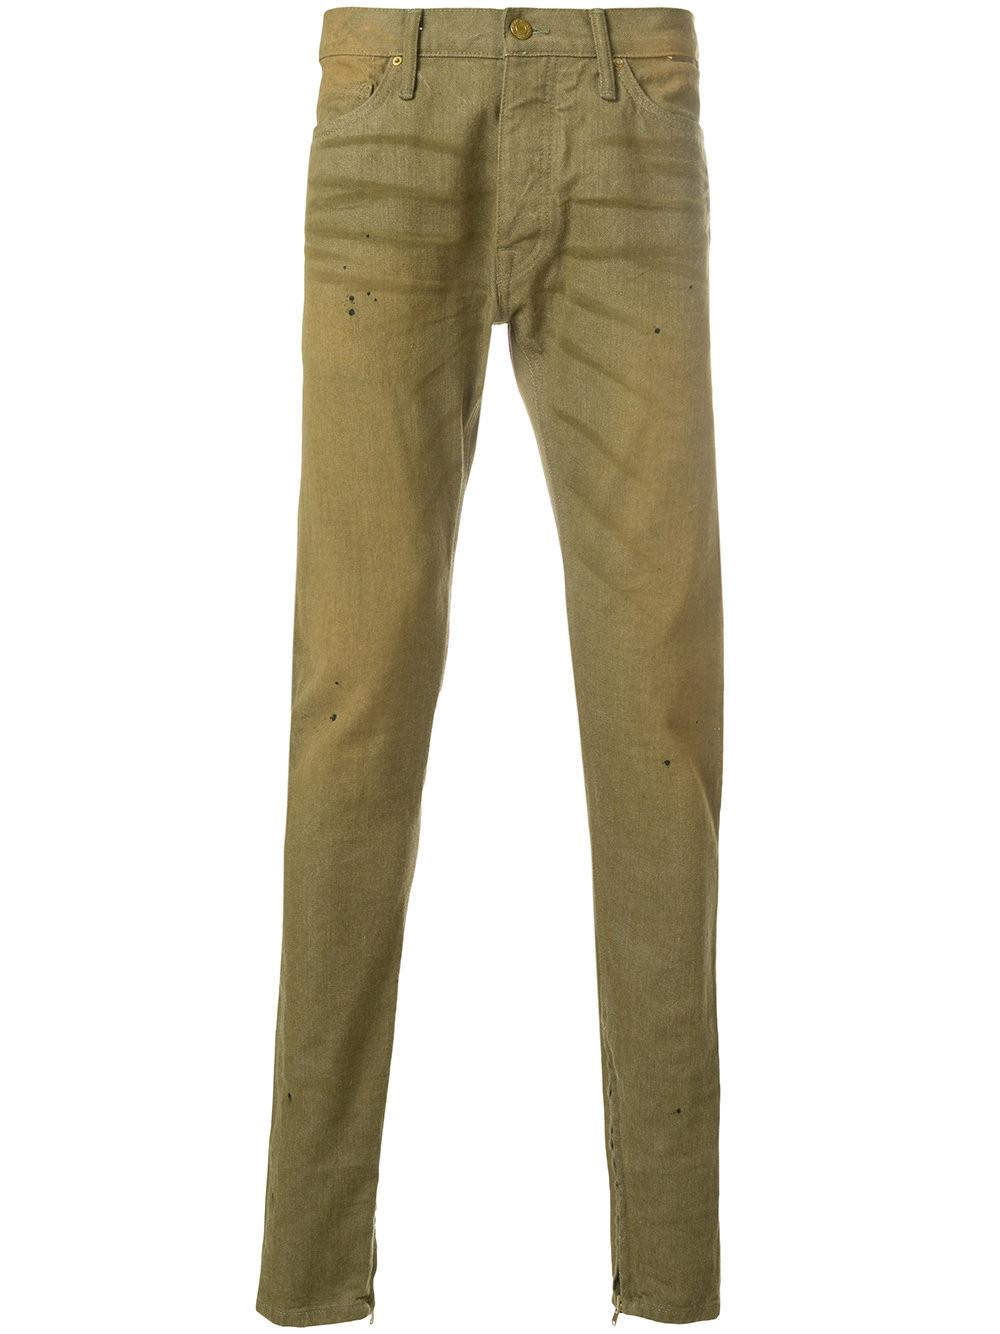 whisker detail trousers - Green Fear of God Discount Cheap Price 3WTXrxkm